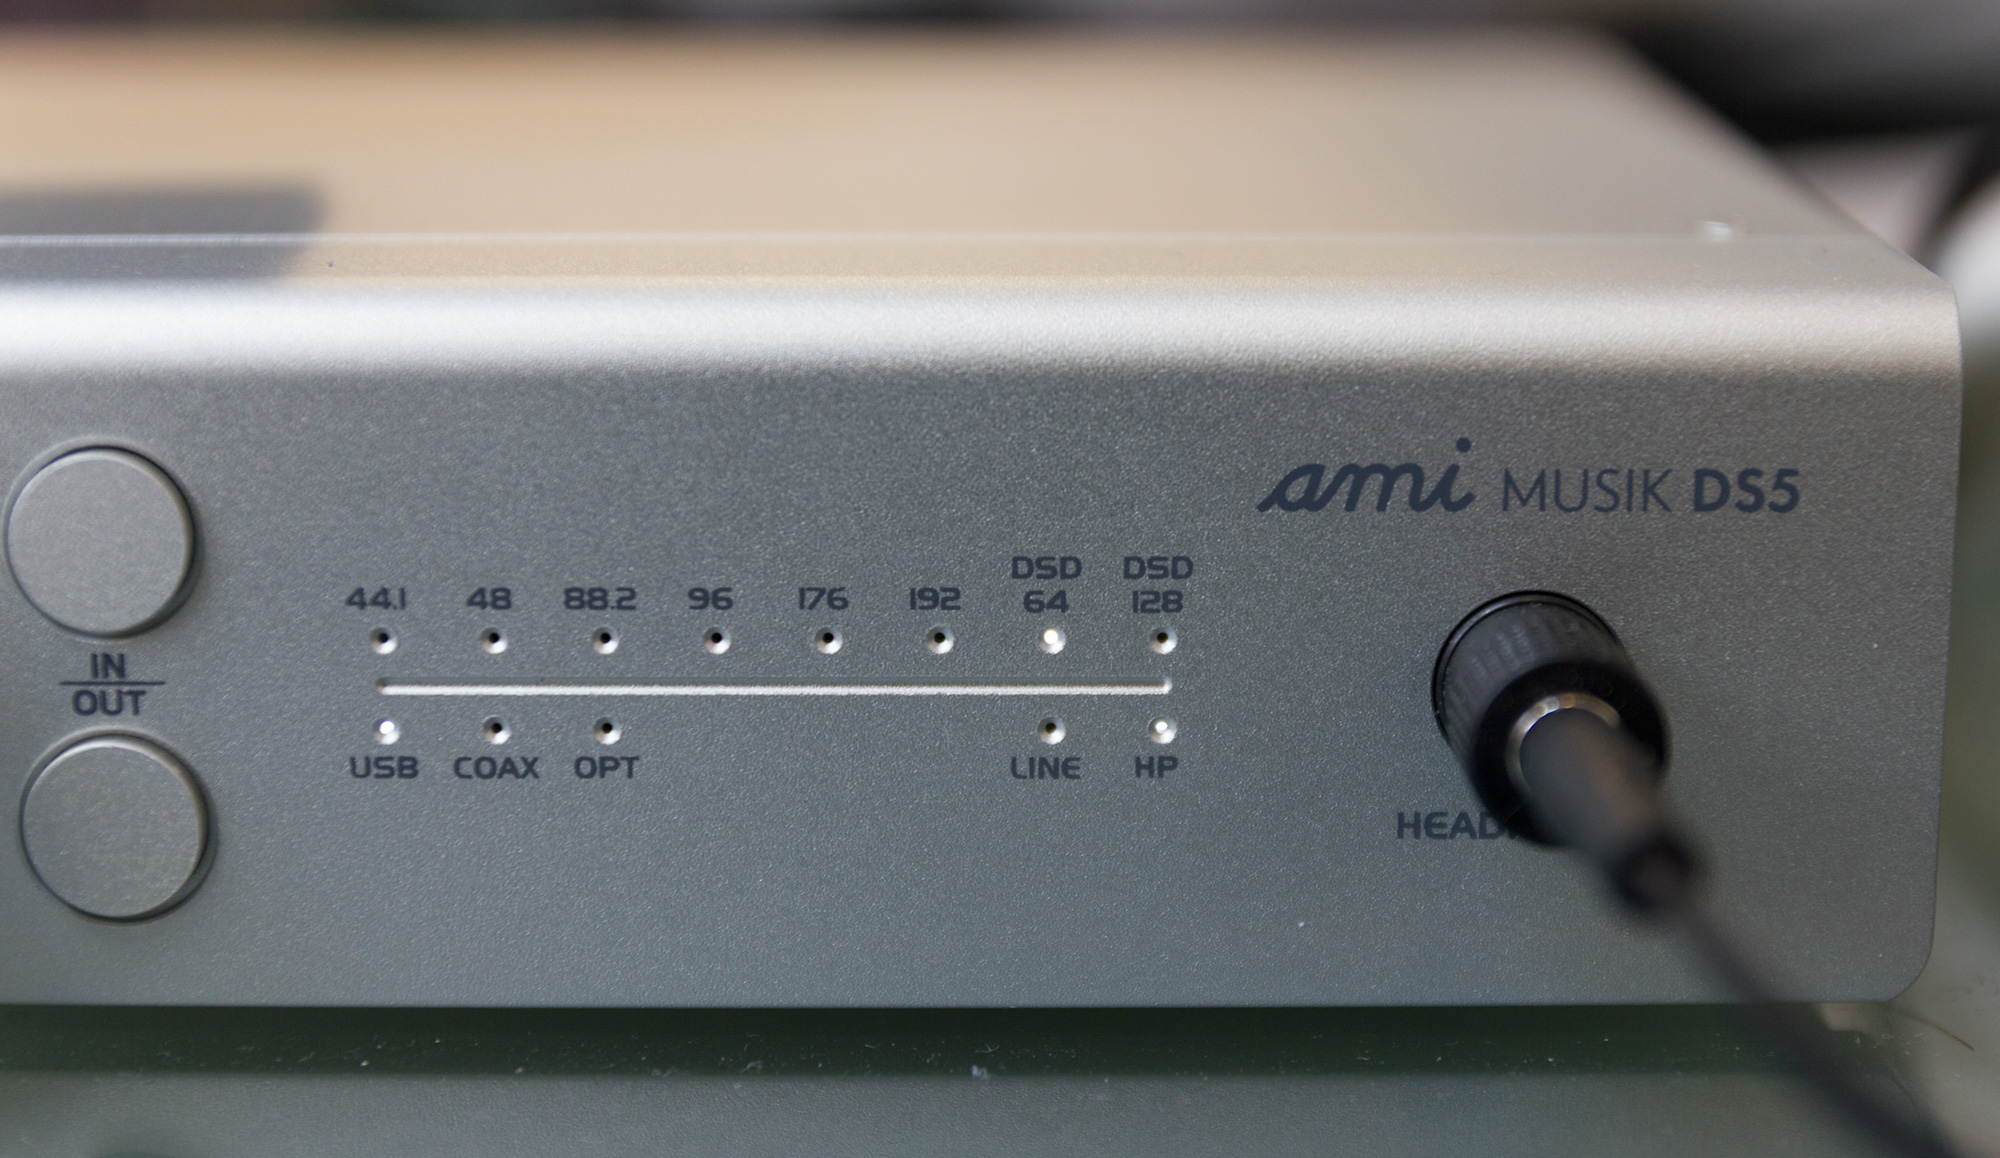 AMI International MUSIK DS5 USB Drivers for Windows 7